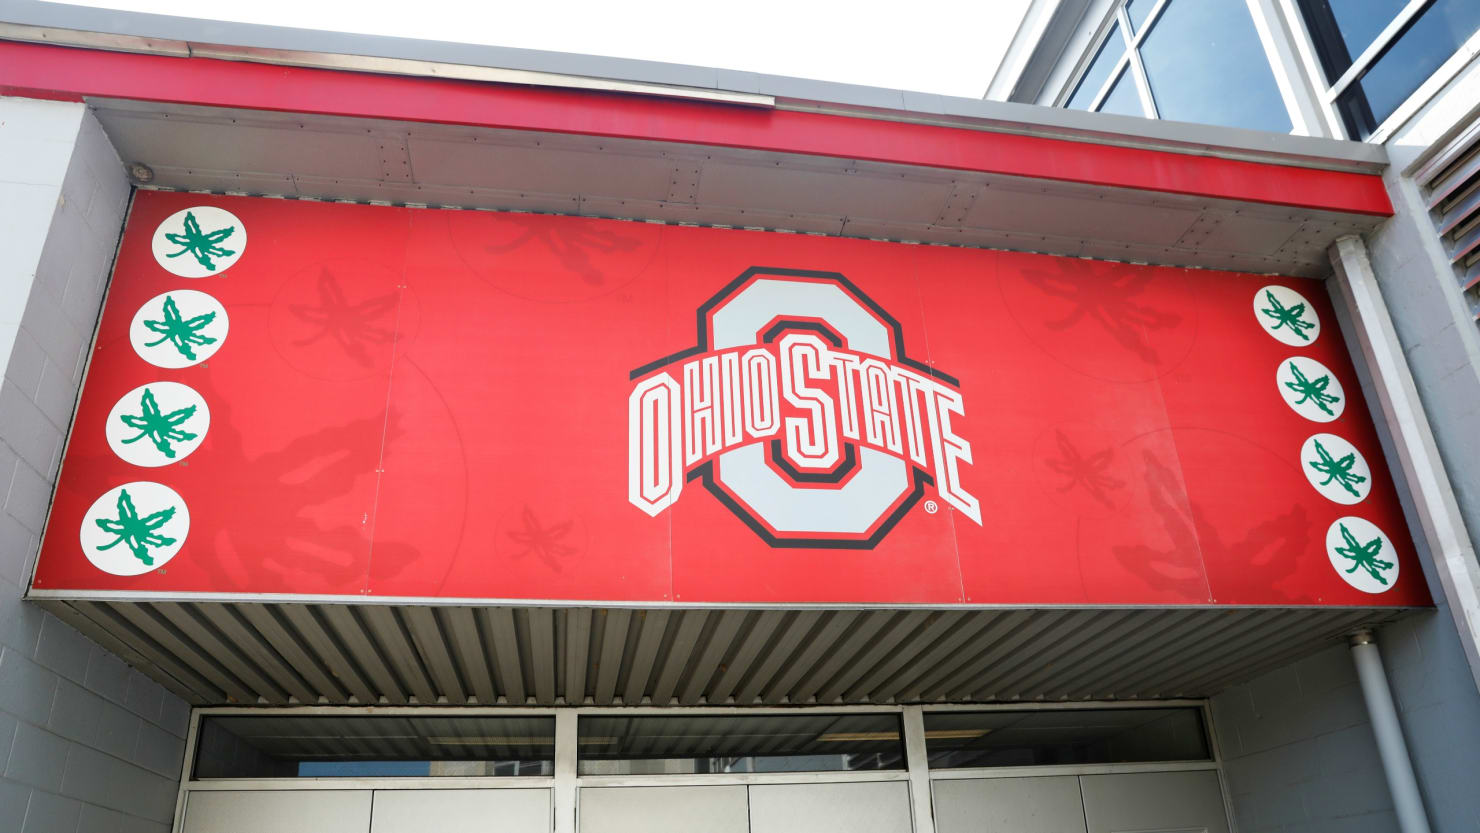 At Least 145 People Reported Sexual Misconduct by Ex-Ohio State Doctor